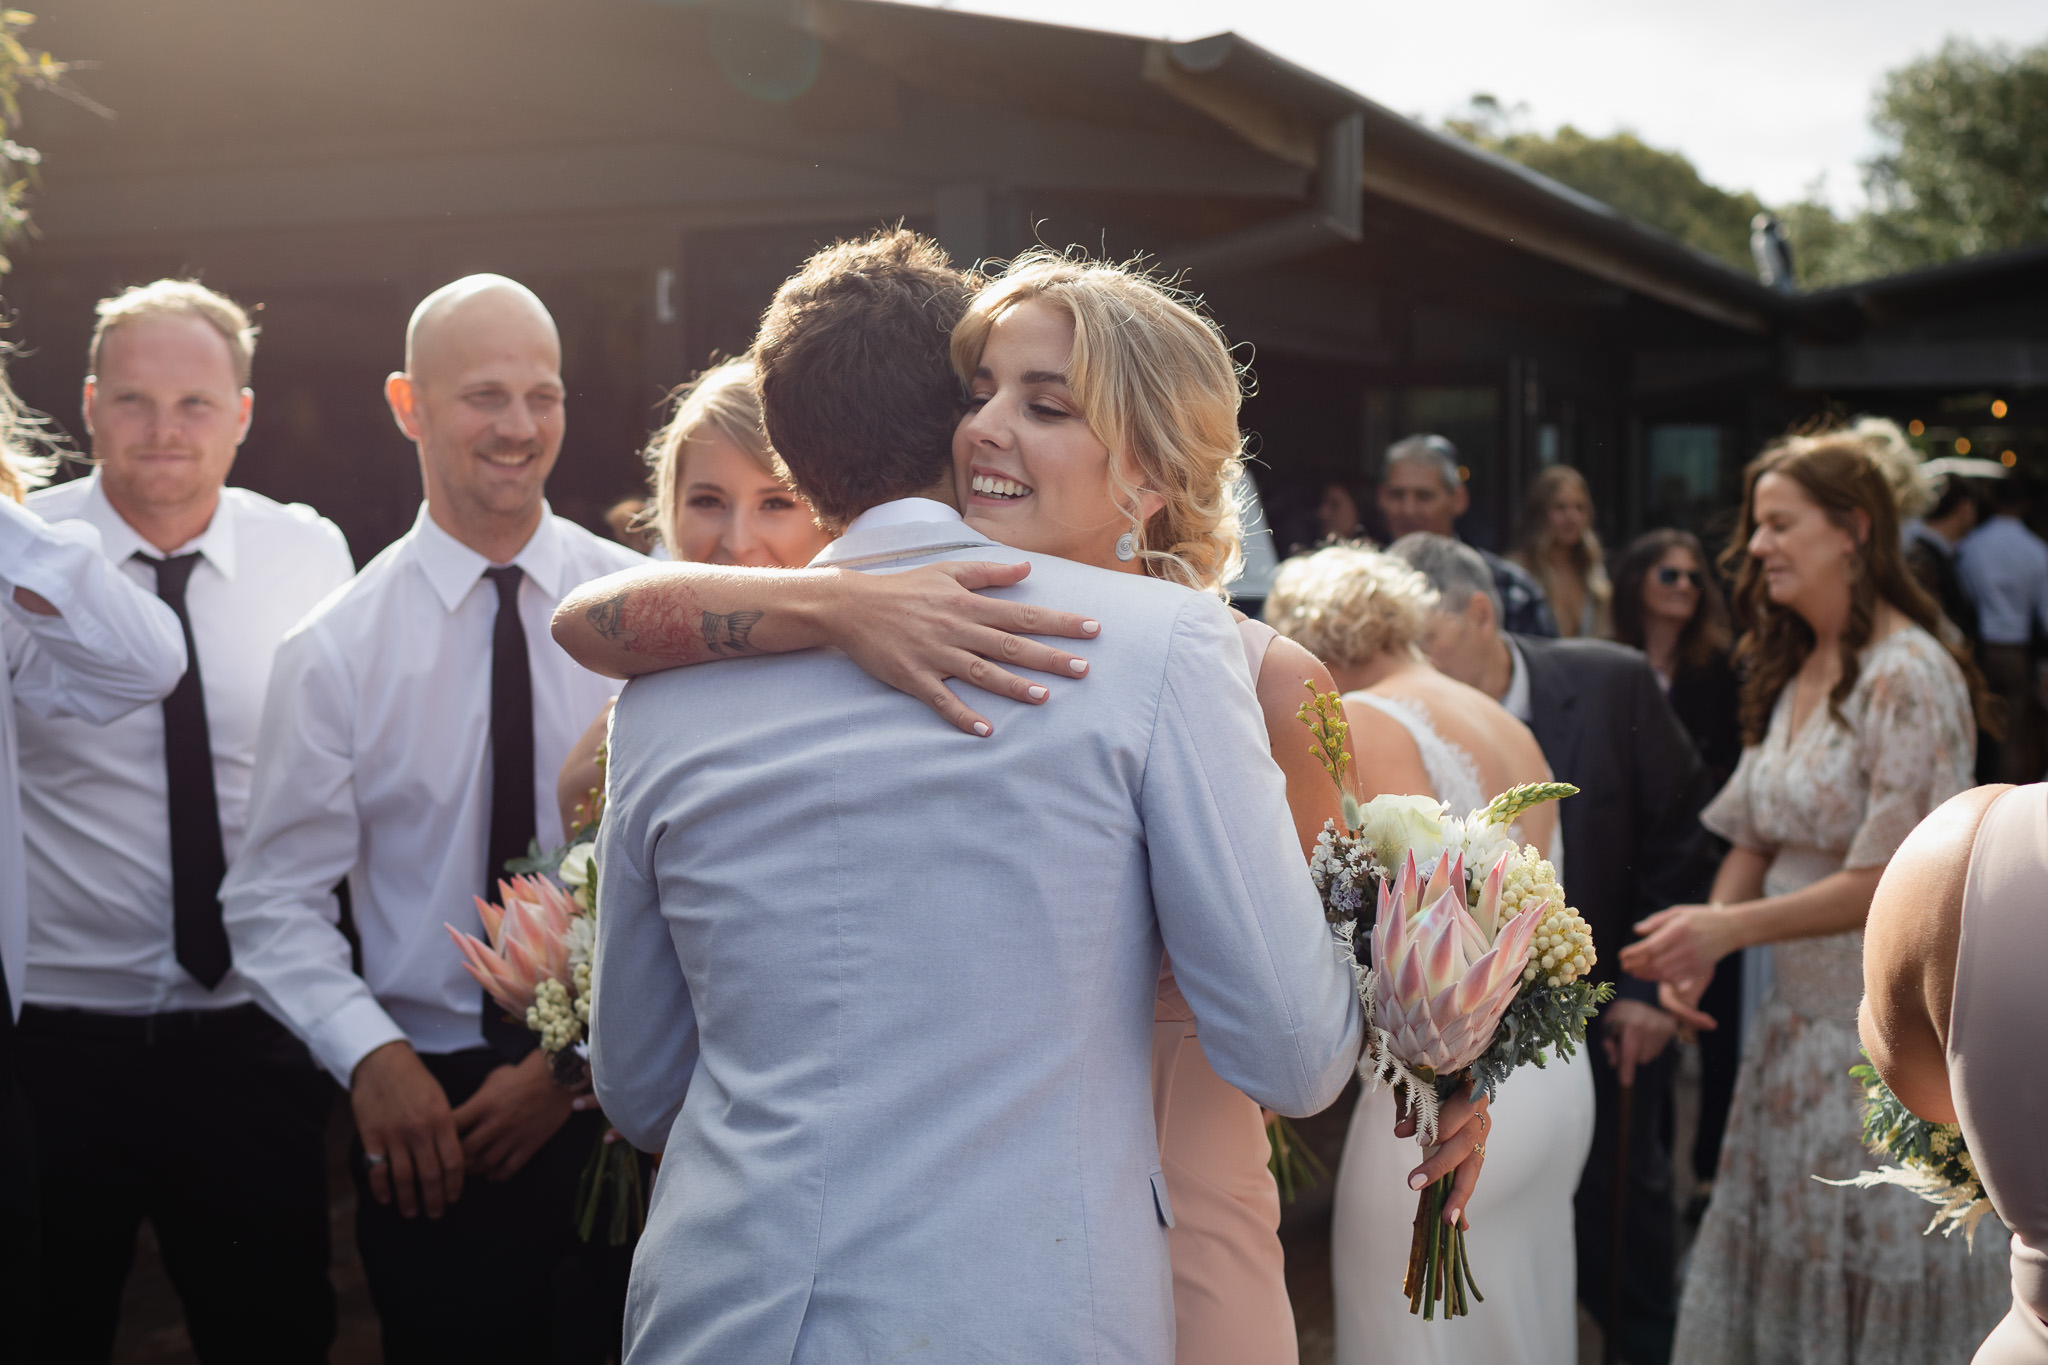 bridesmaid with tattoos and protea bouquet hugging groom after wedding